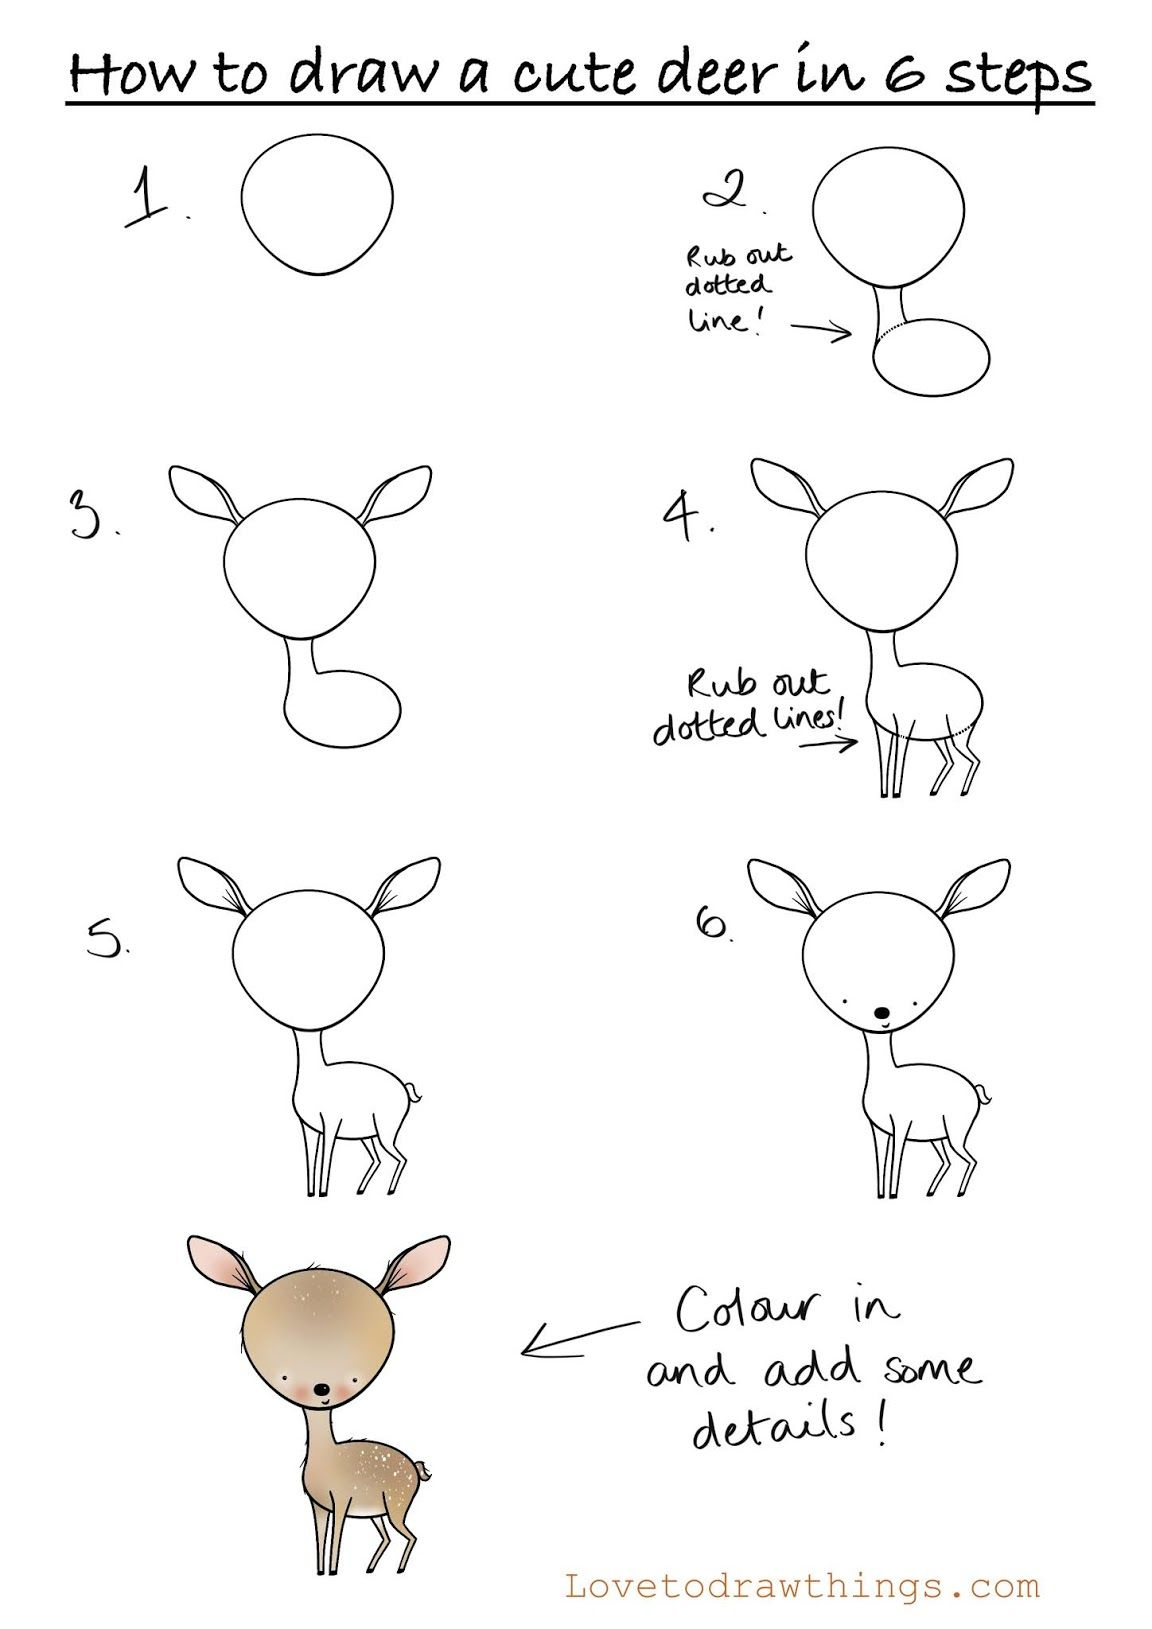 How to draw a cute deer in 6 steps